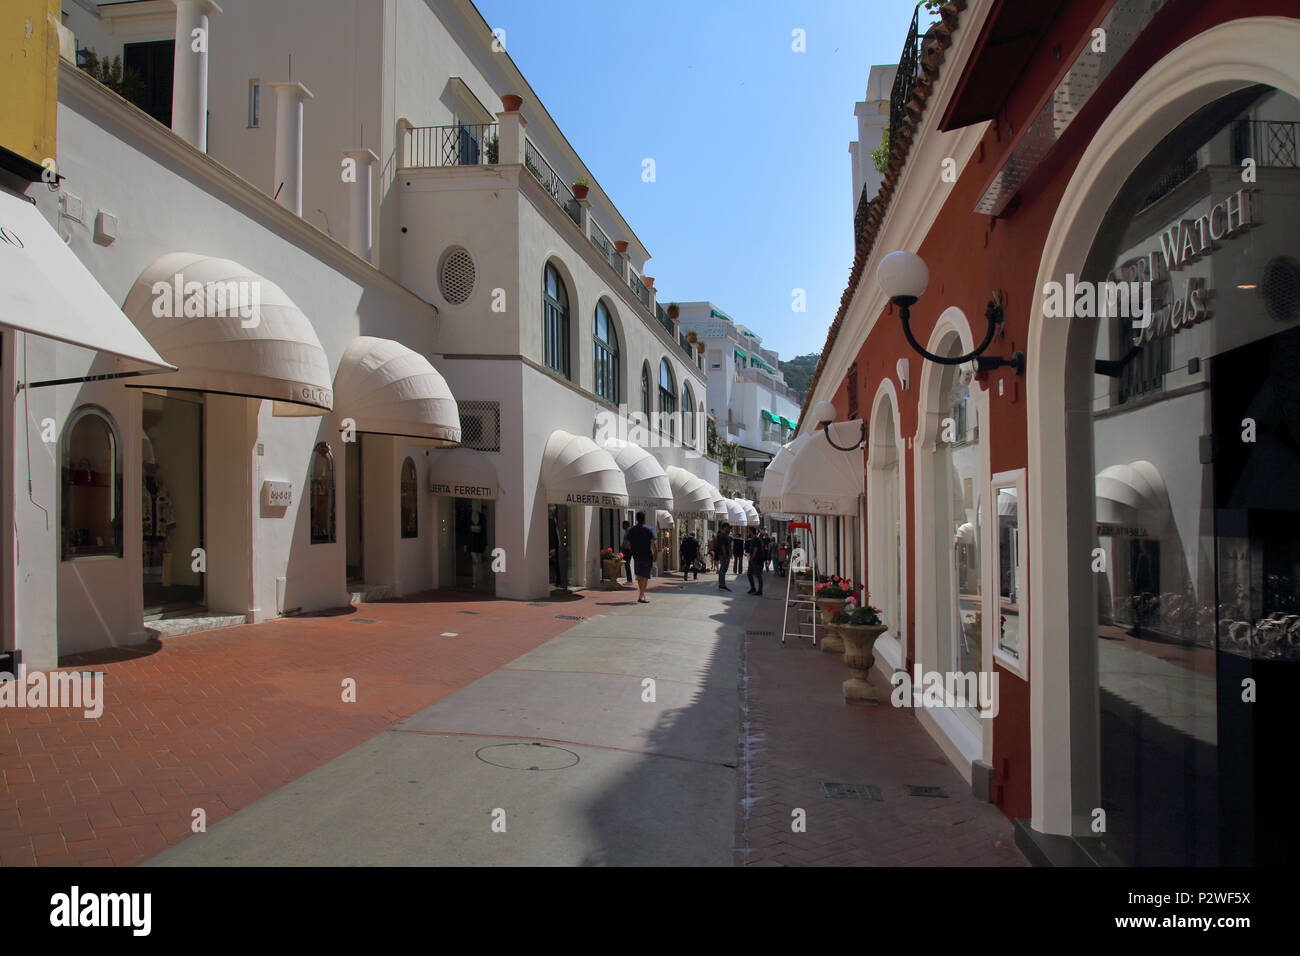 upmarket shops and shopping in capri town on the island of capri Italy - Stock Image